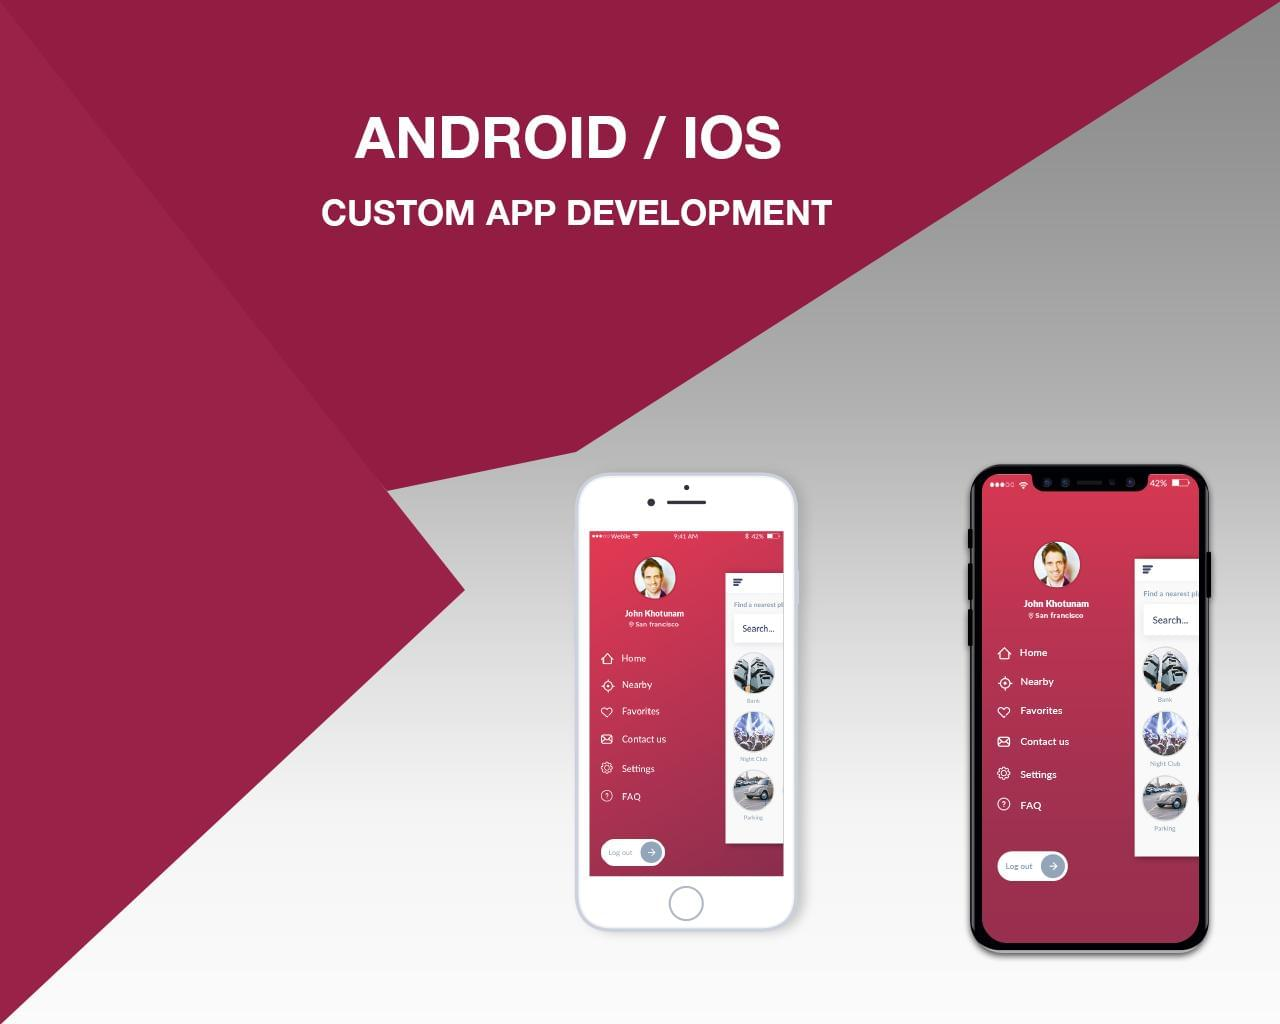 Android / IOS Custom App Development by itechnotion - 112231